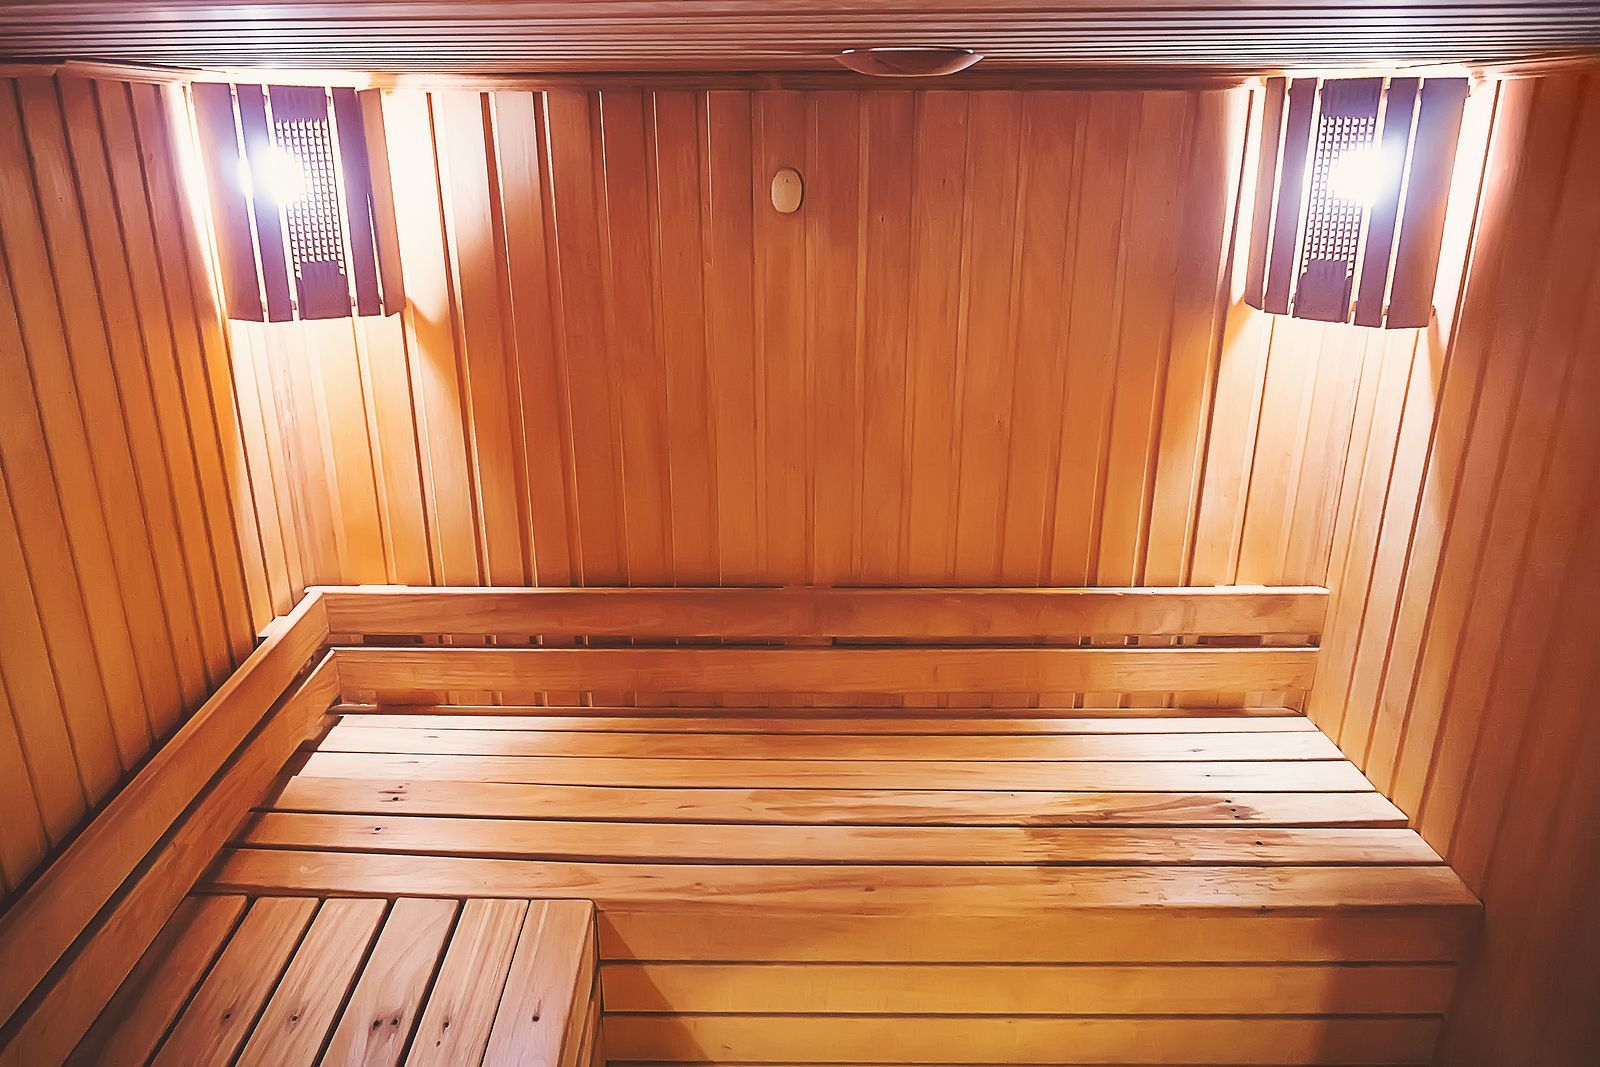 Buy One For The Home Ditch Your Traditional Sauna For A Home Infrared Sauna Traditional Saunas Home Infrared Sauna Door Design